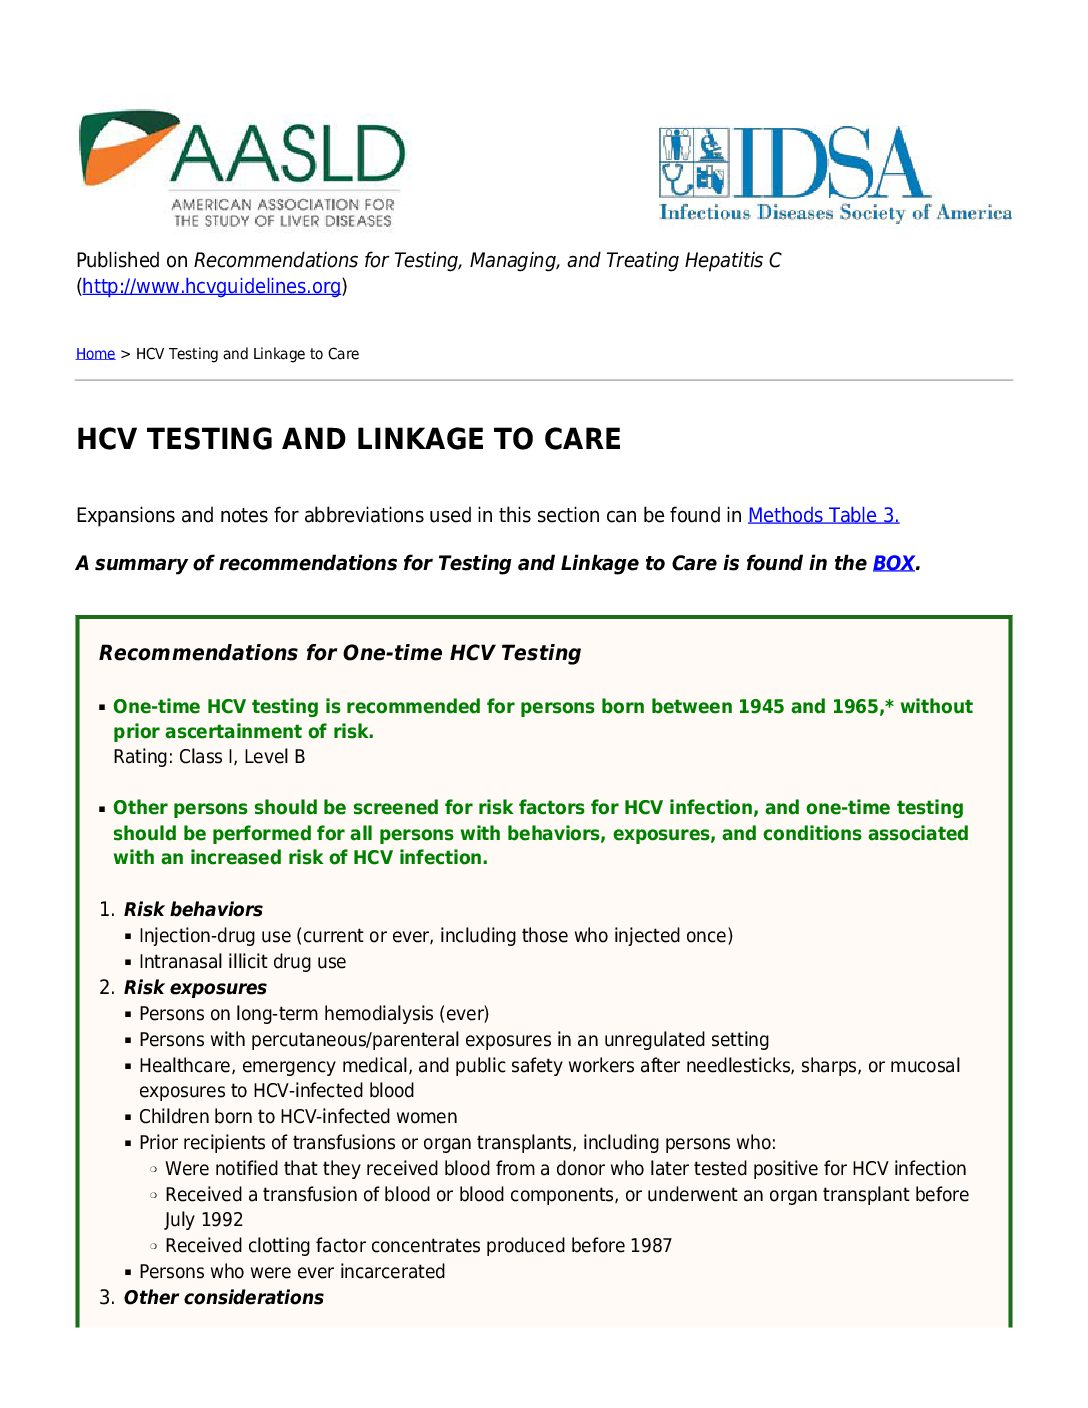 HCV testing and linkage to care